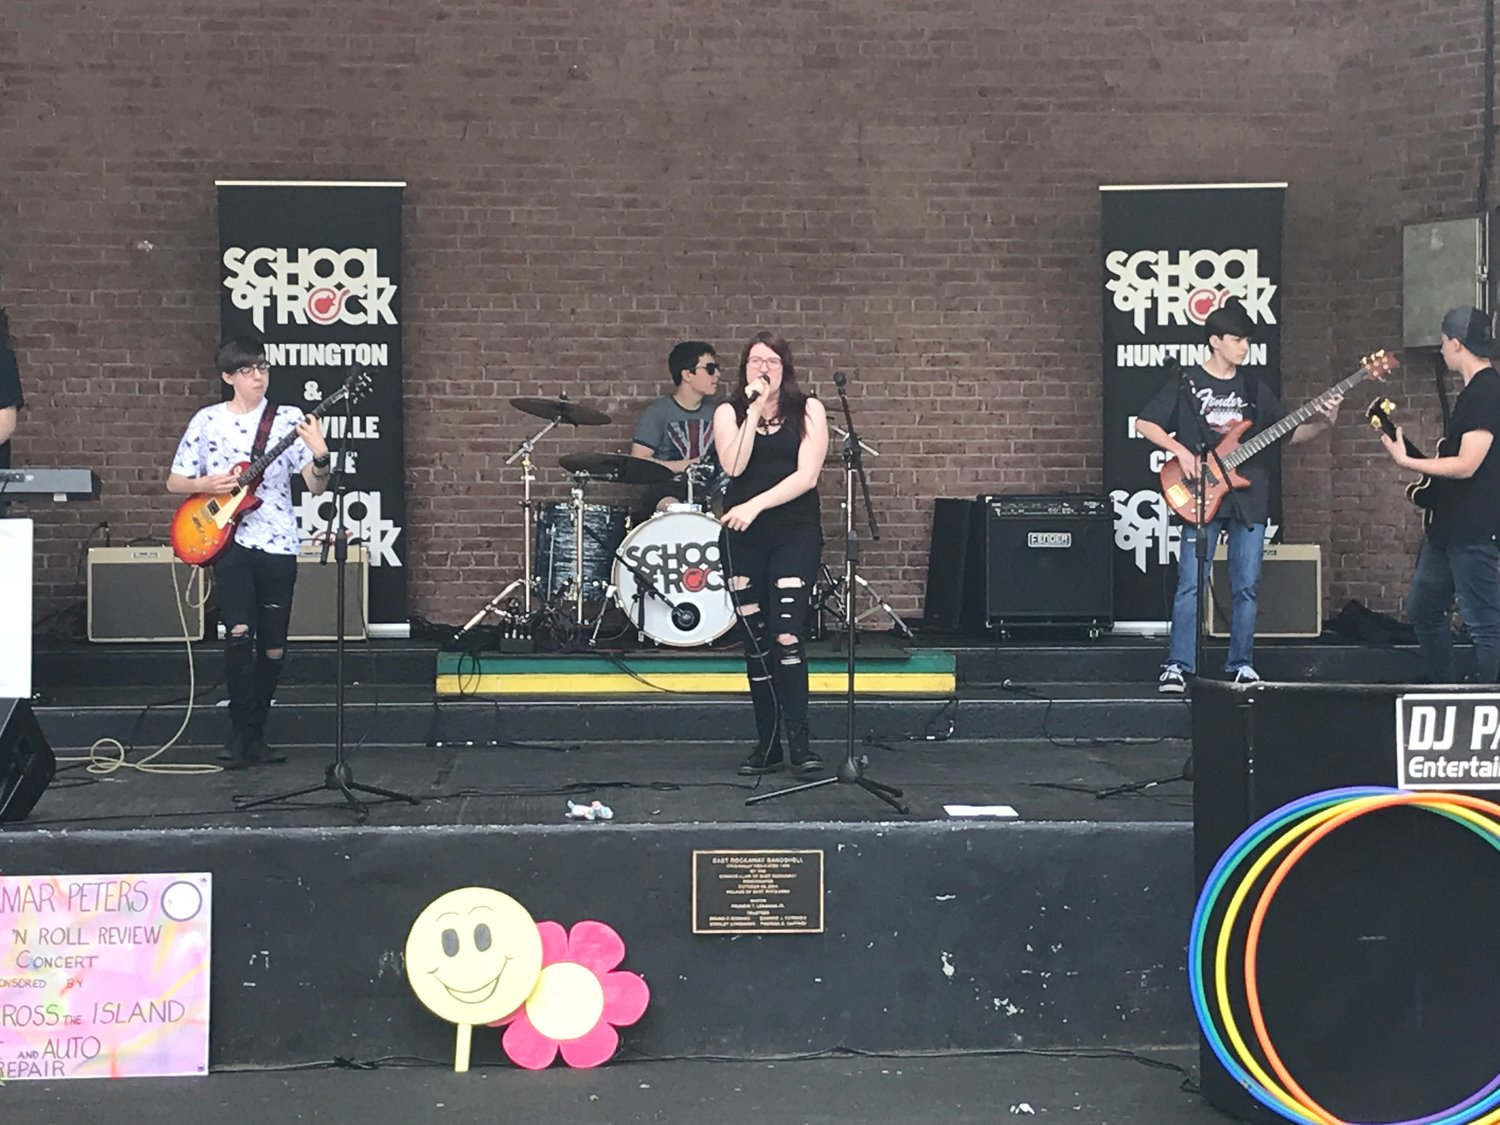 Students from the School of Rock performed for attendees.